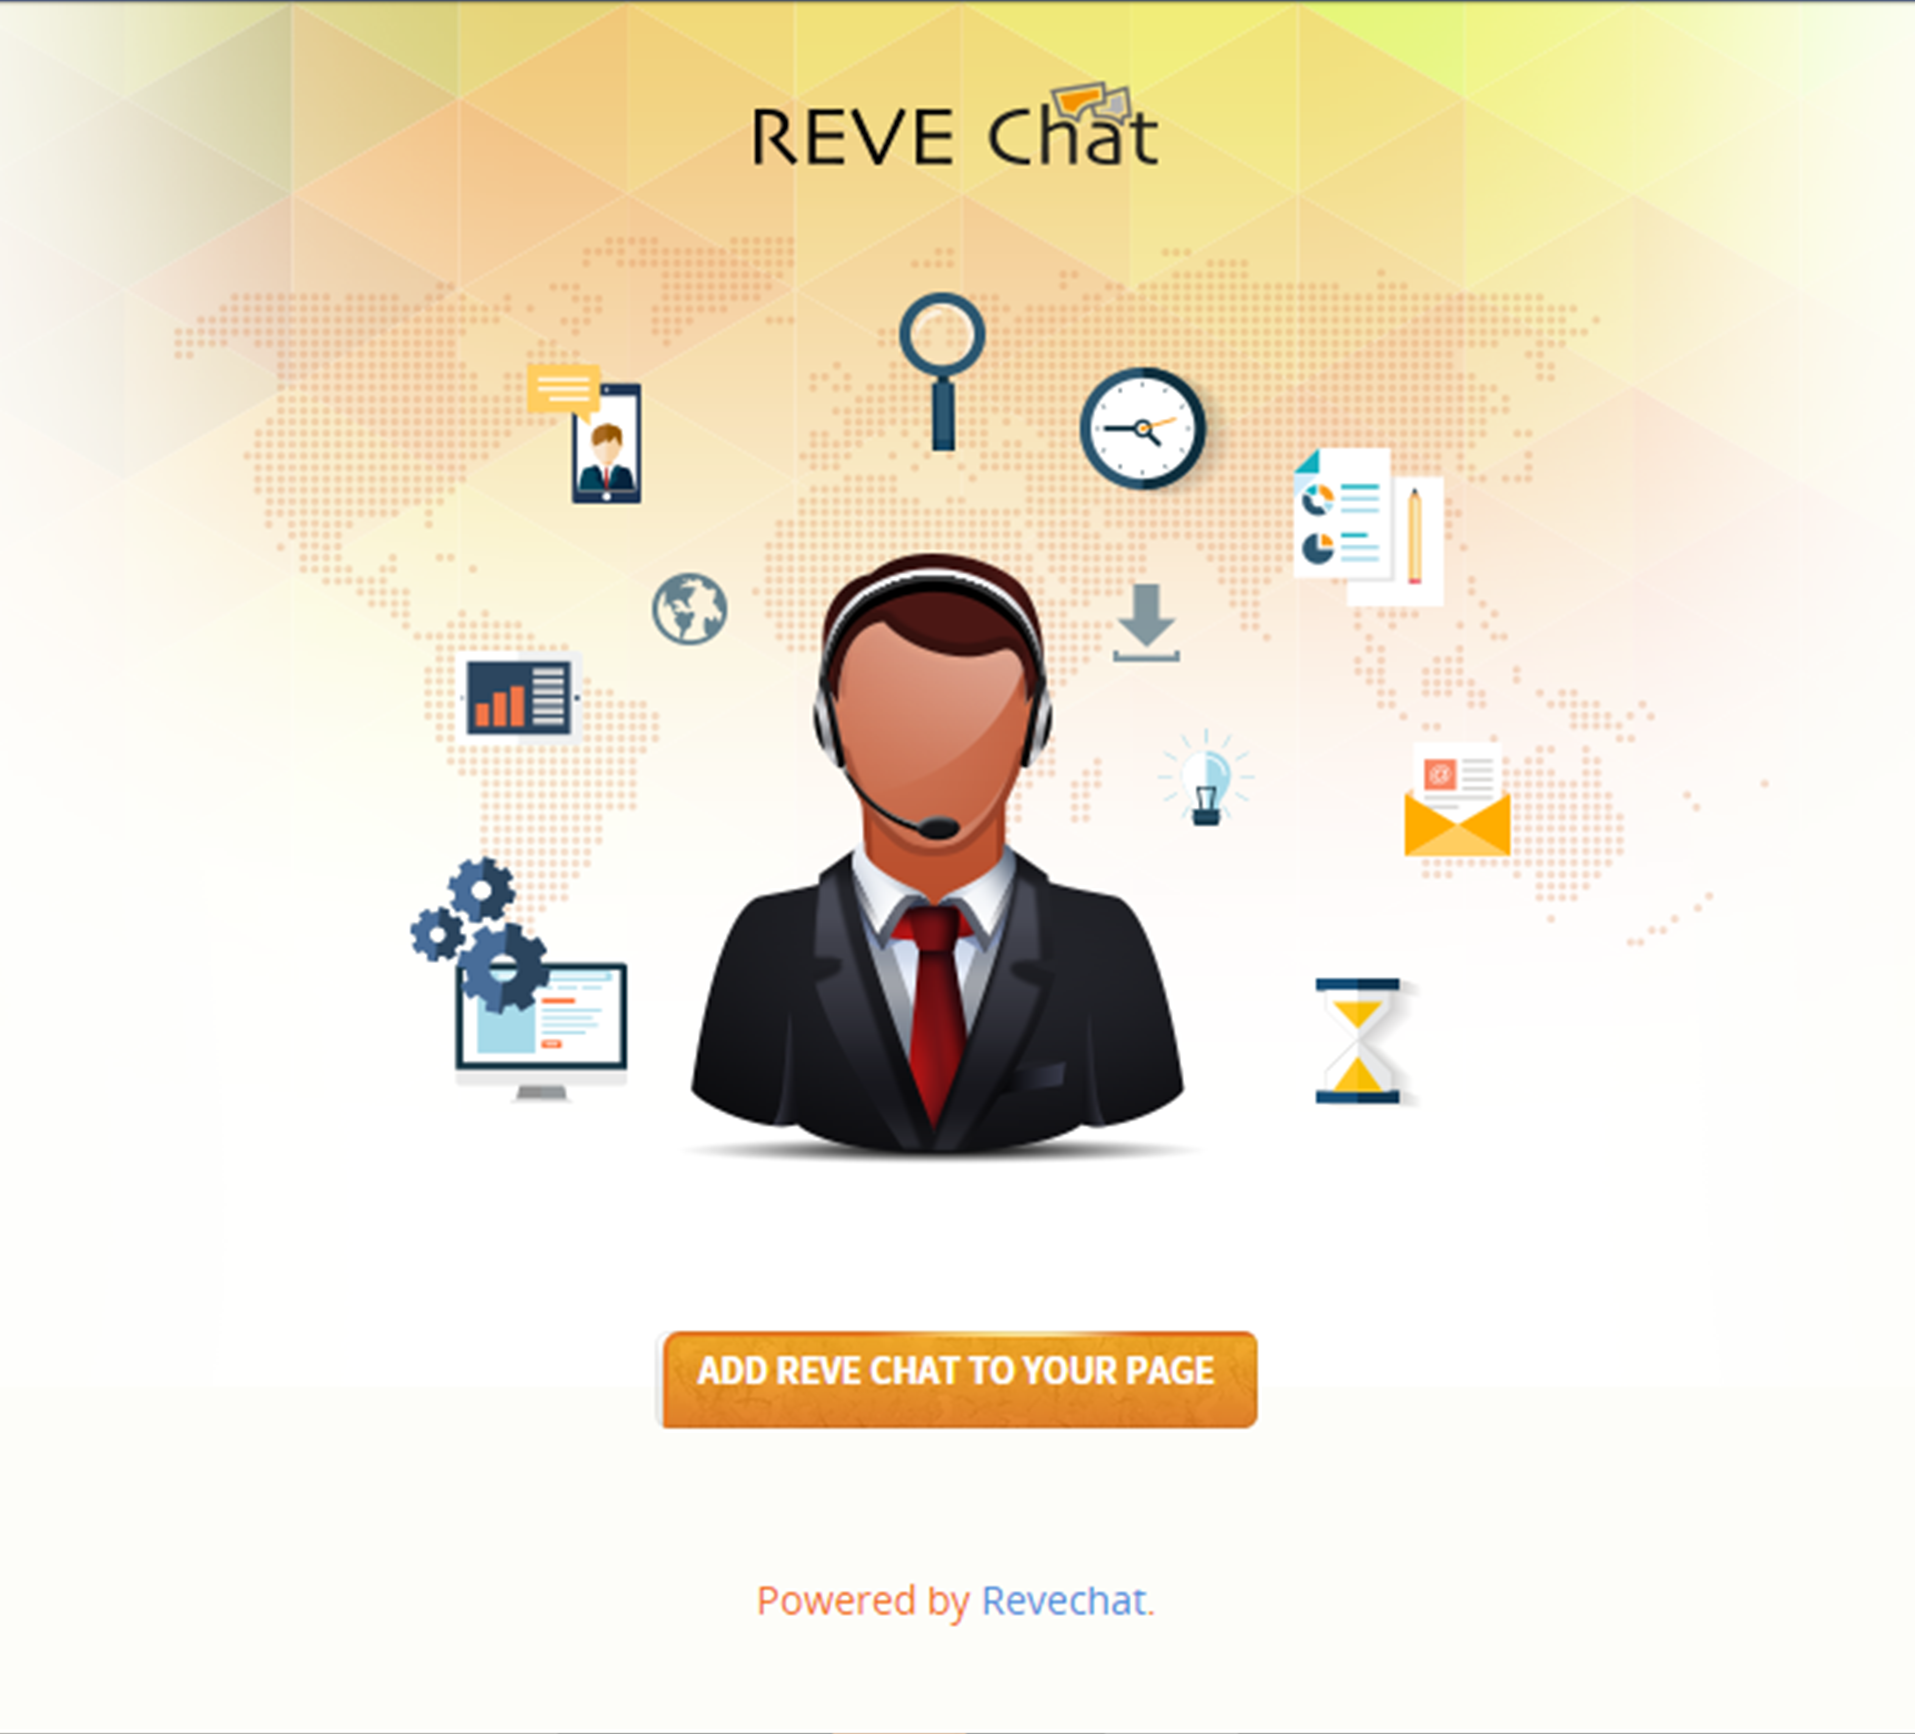 reve-chat-integration-with-facebook